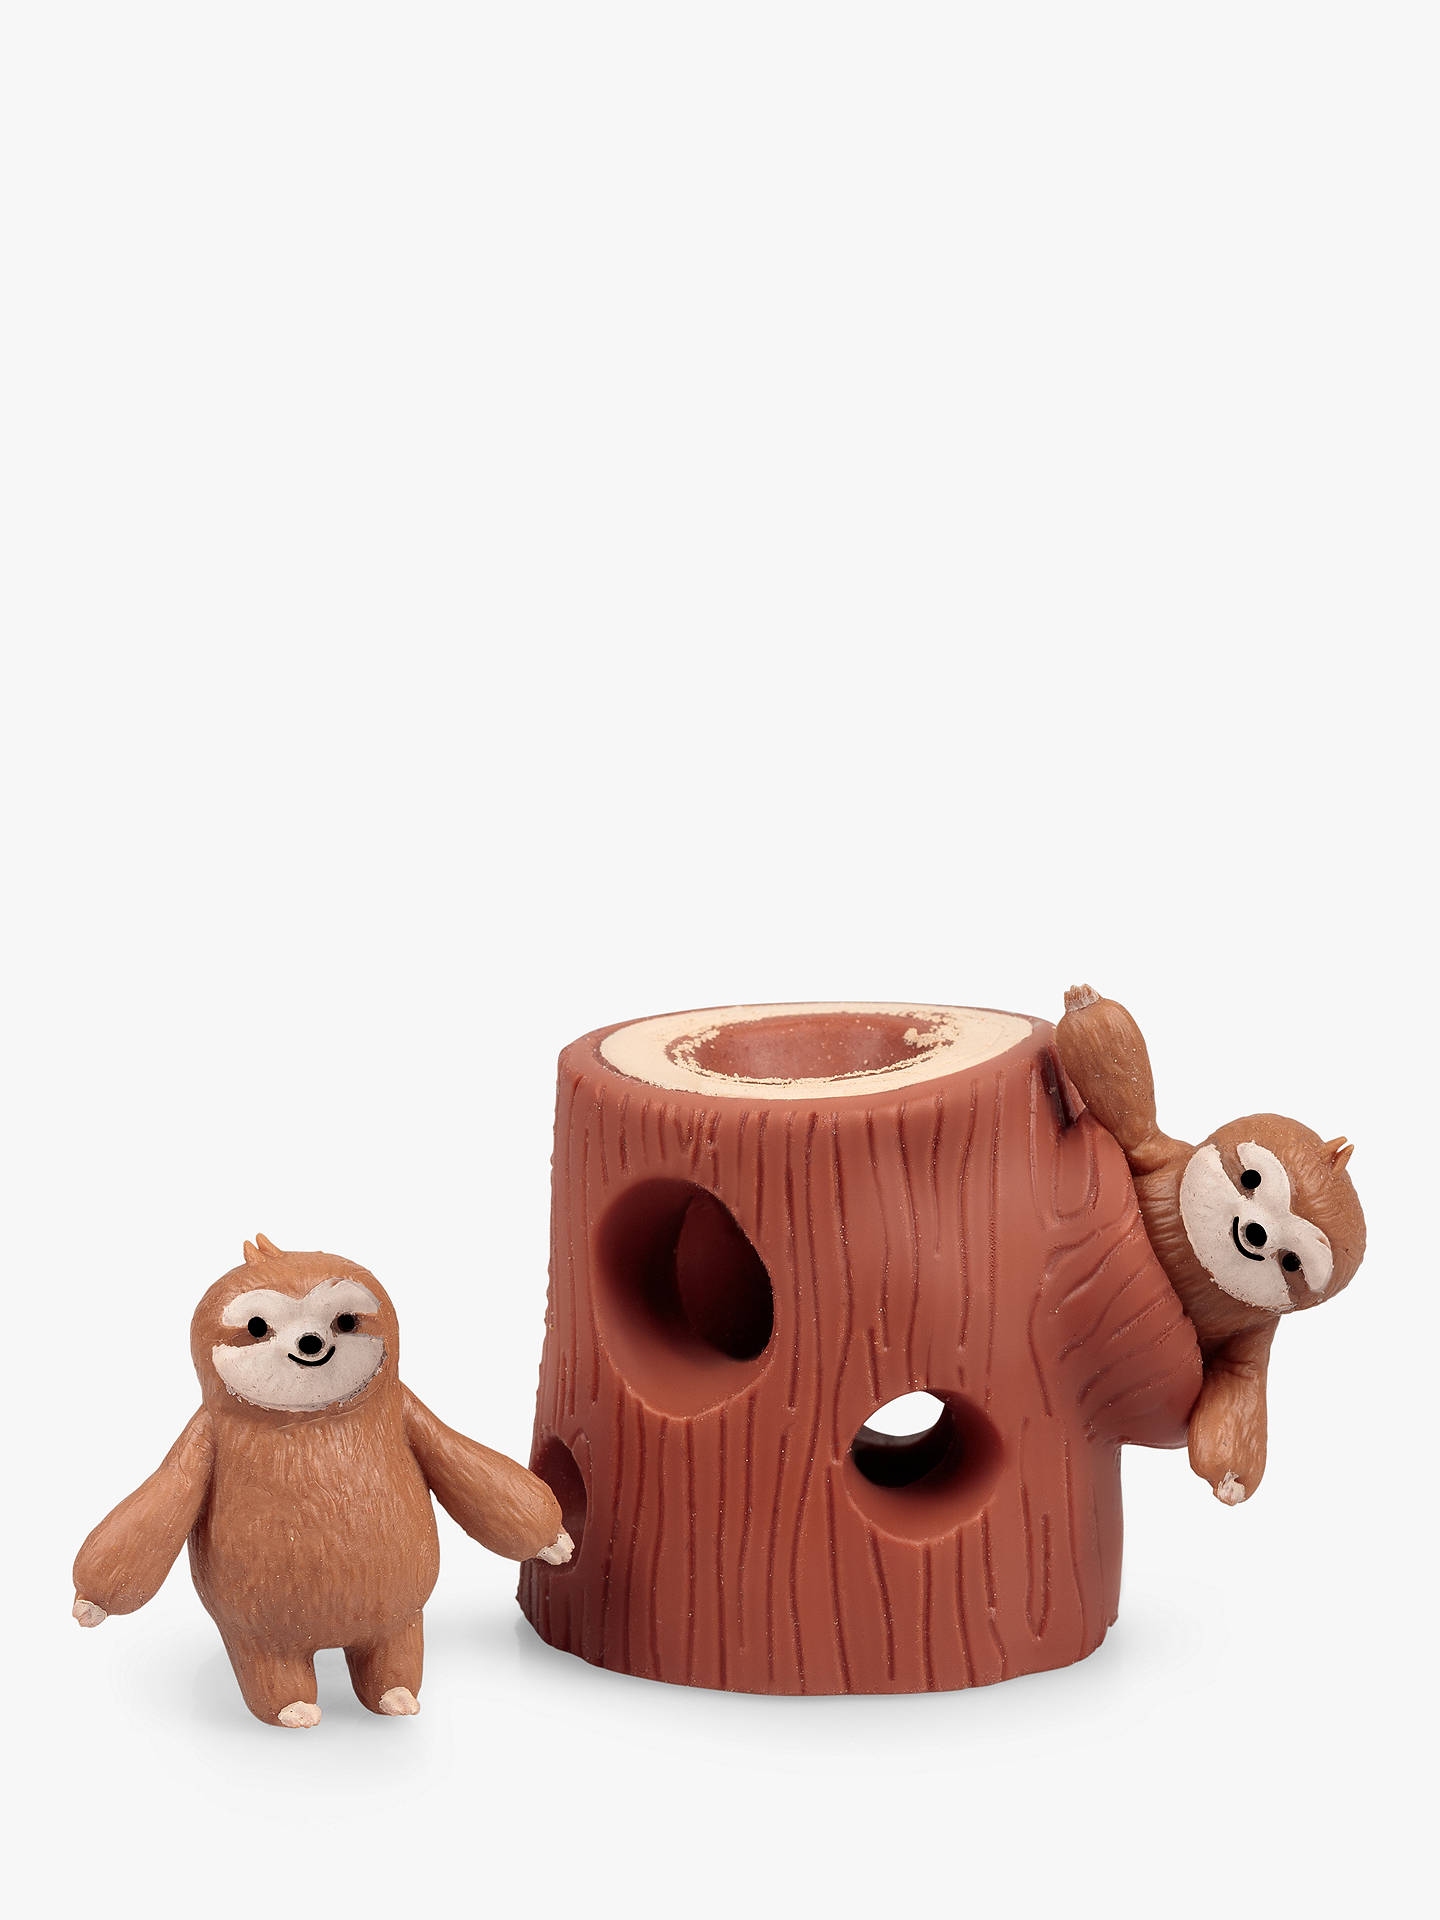 BuyStretchy Sloth And Stump Online at johnlewis.com